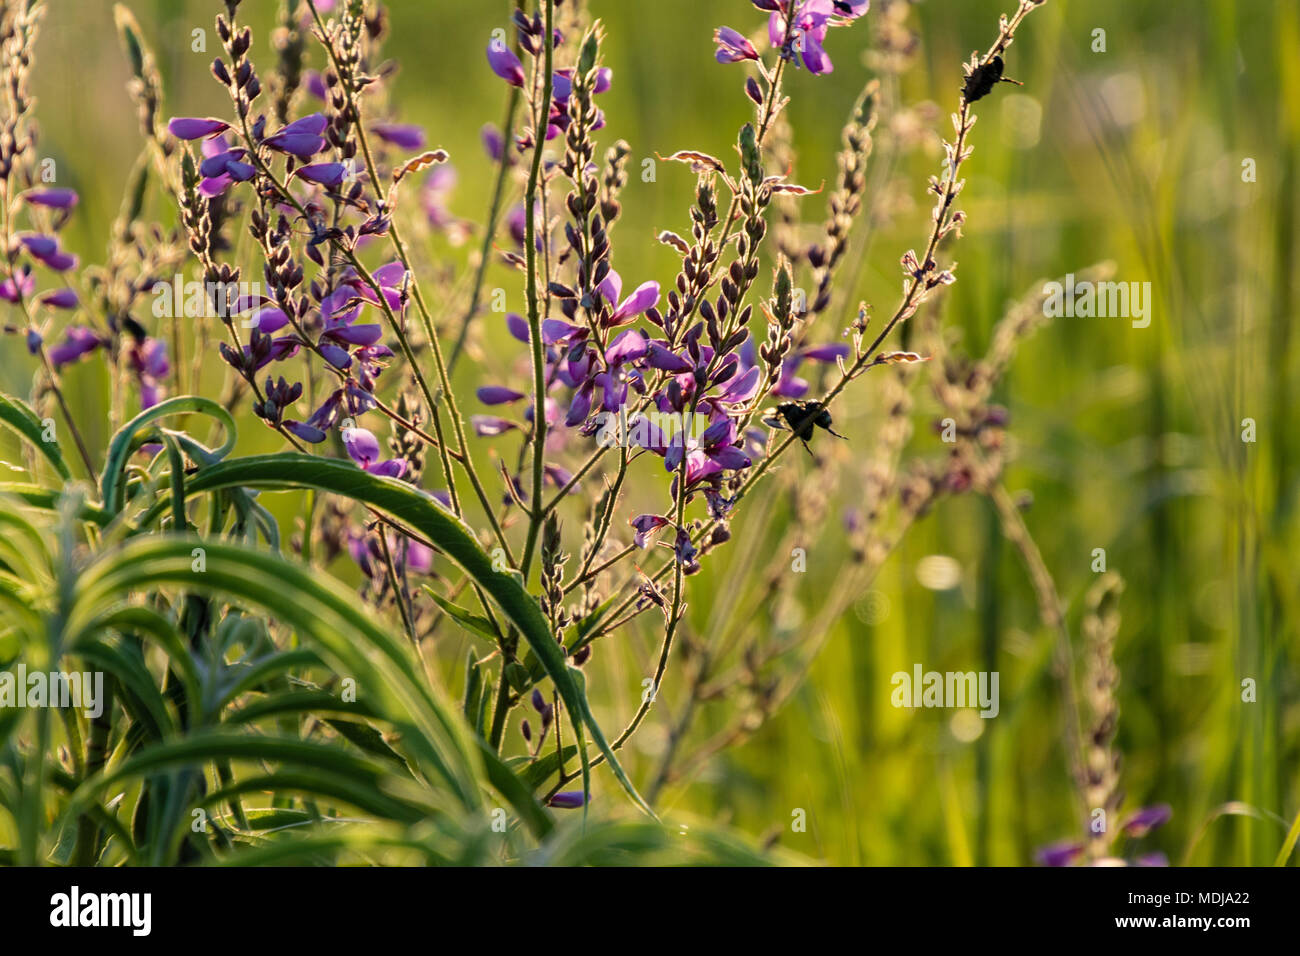 A Weed With Purple Flowers Found In A Park Stock Photo 180497242